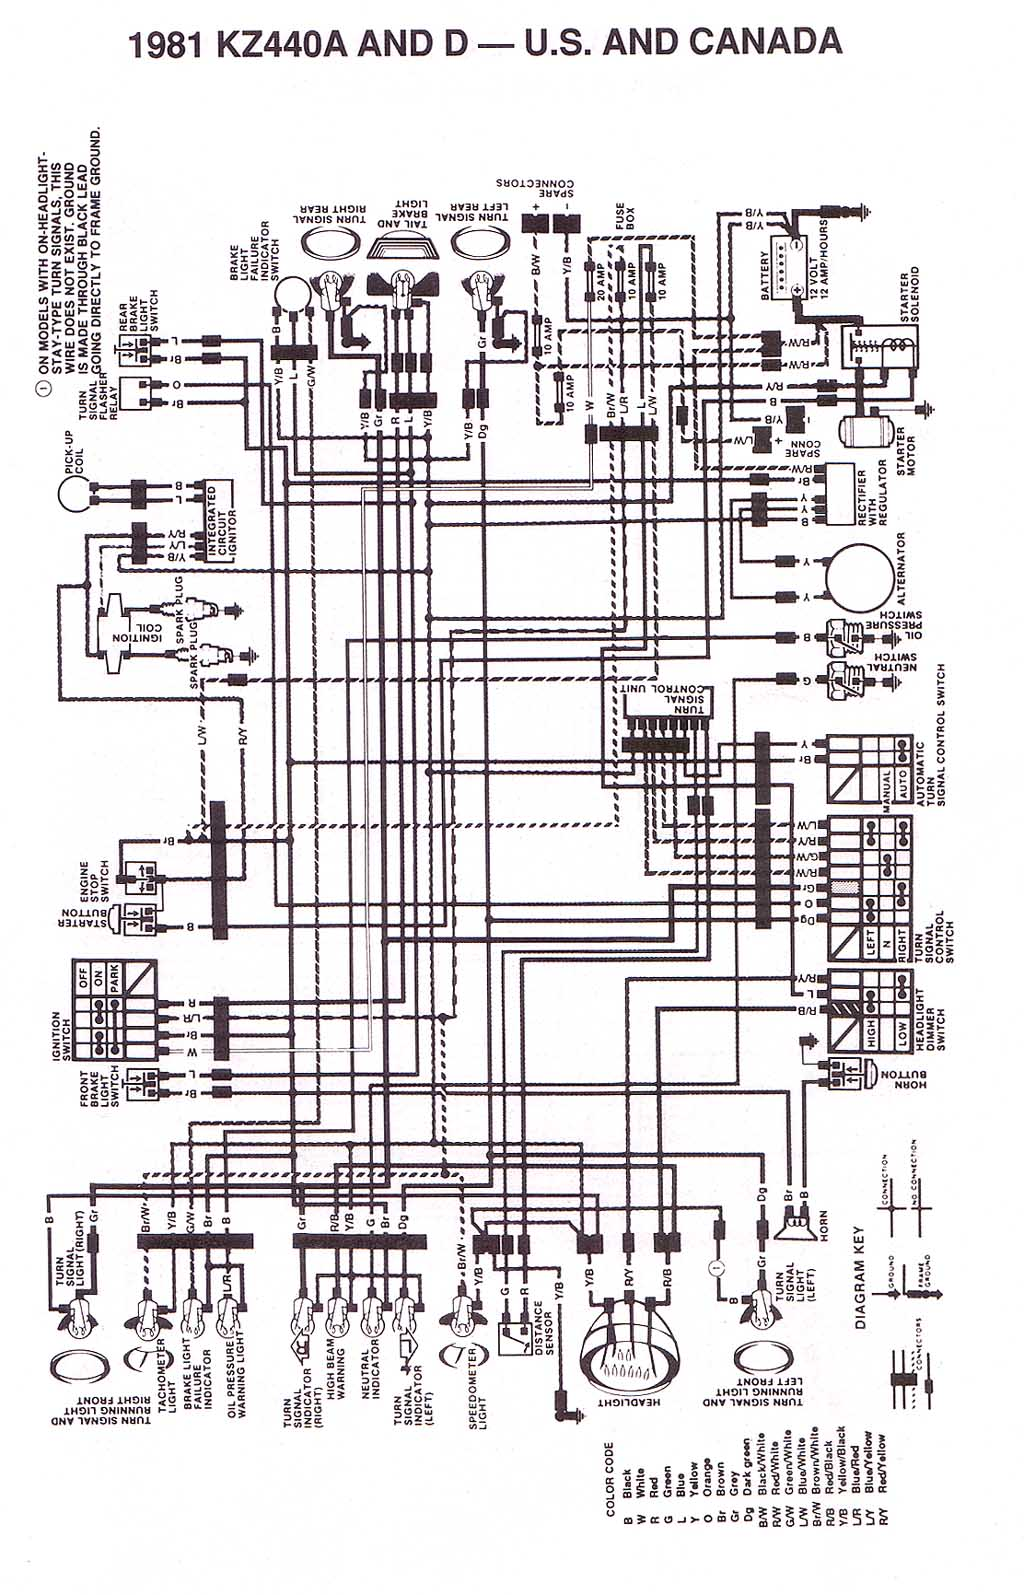 1980 Kawasaki Kz440 Igniter Wiring Diagram 42 1982 Gpz 750 Schematic Kz440a And D 28us29 1981 Ltd 440 Rebuild Thread Page